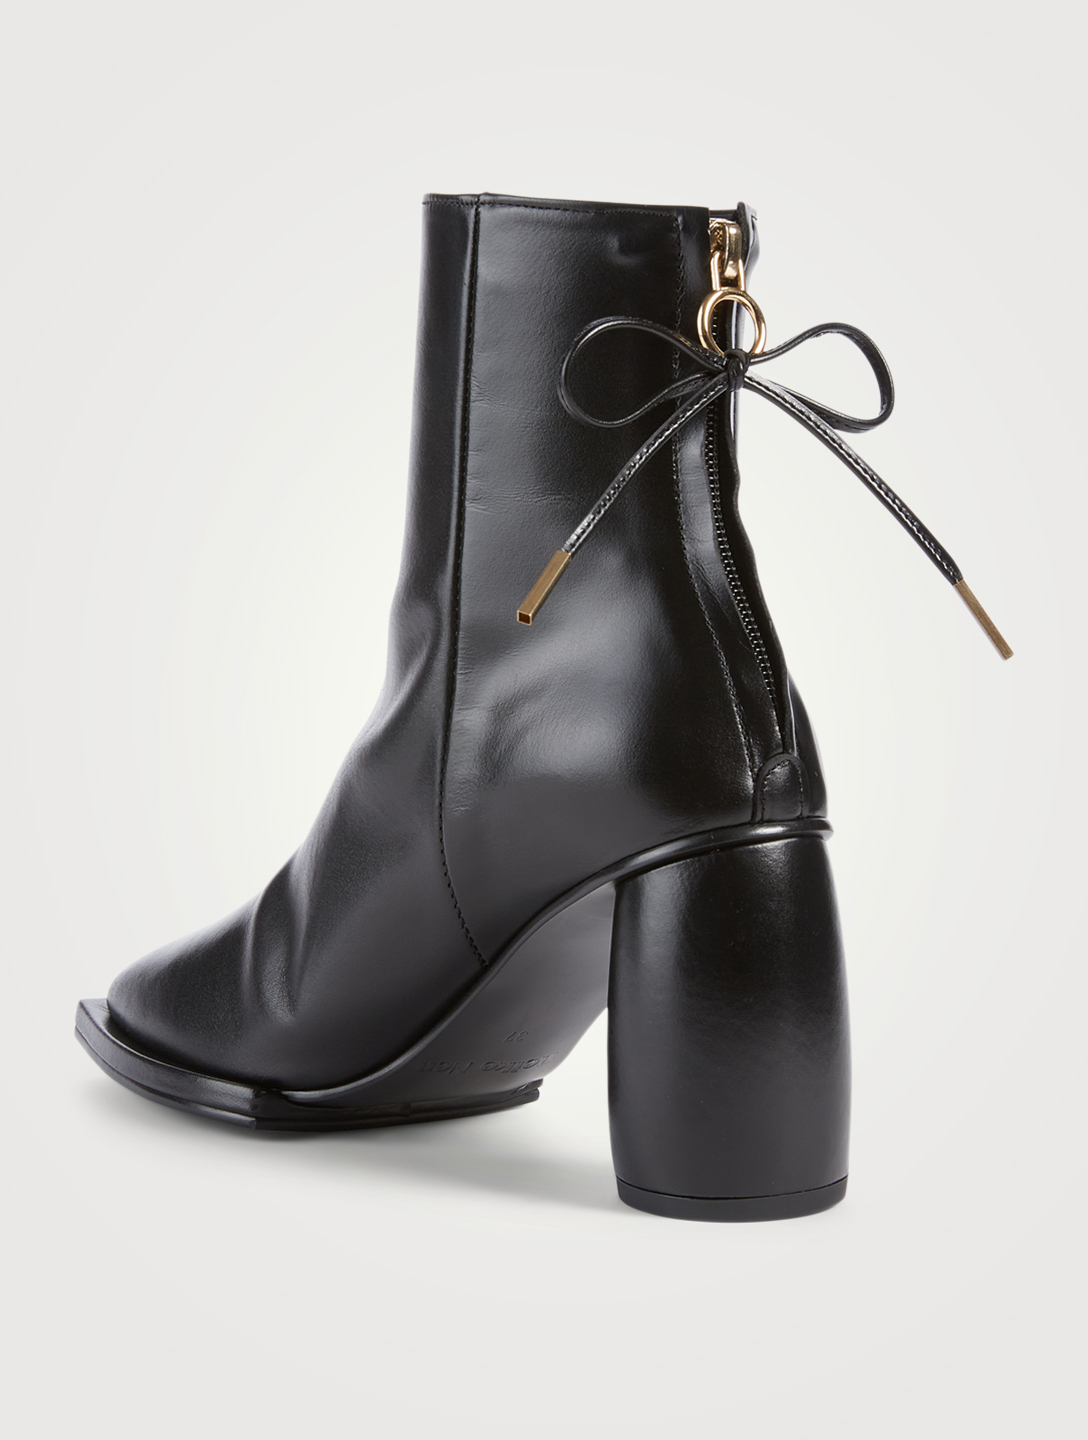 REIKE NEN Square Ribbon Leather Heeled Ankle Boots Women's Black